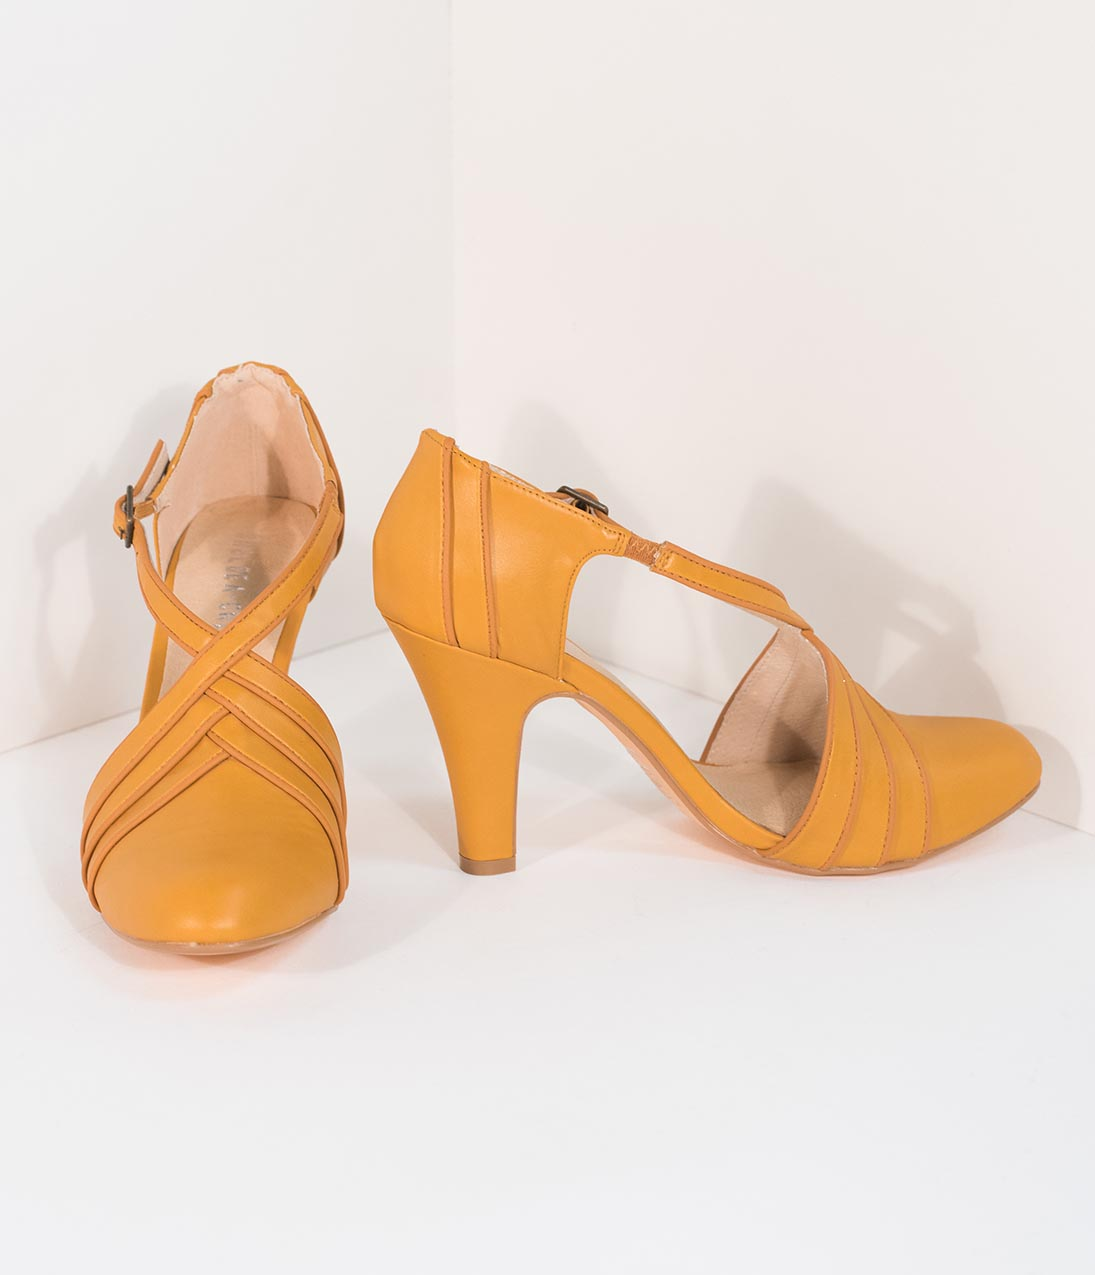 1930s Shoes History Chelsea Crew Vintage Style Mustard Yellow Leatherette DOrsay Lana Heels $64.00 AT vintagedancer.com